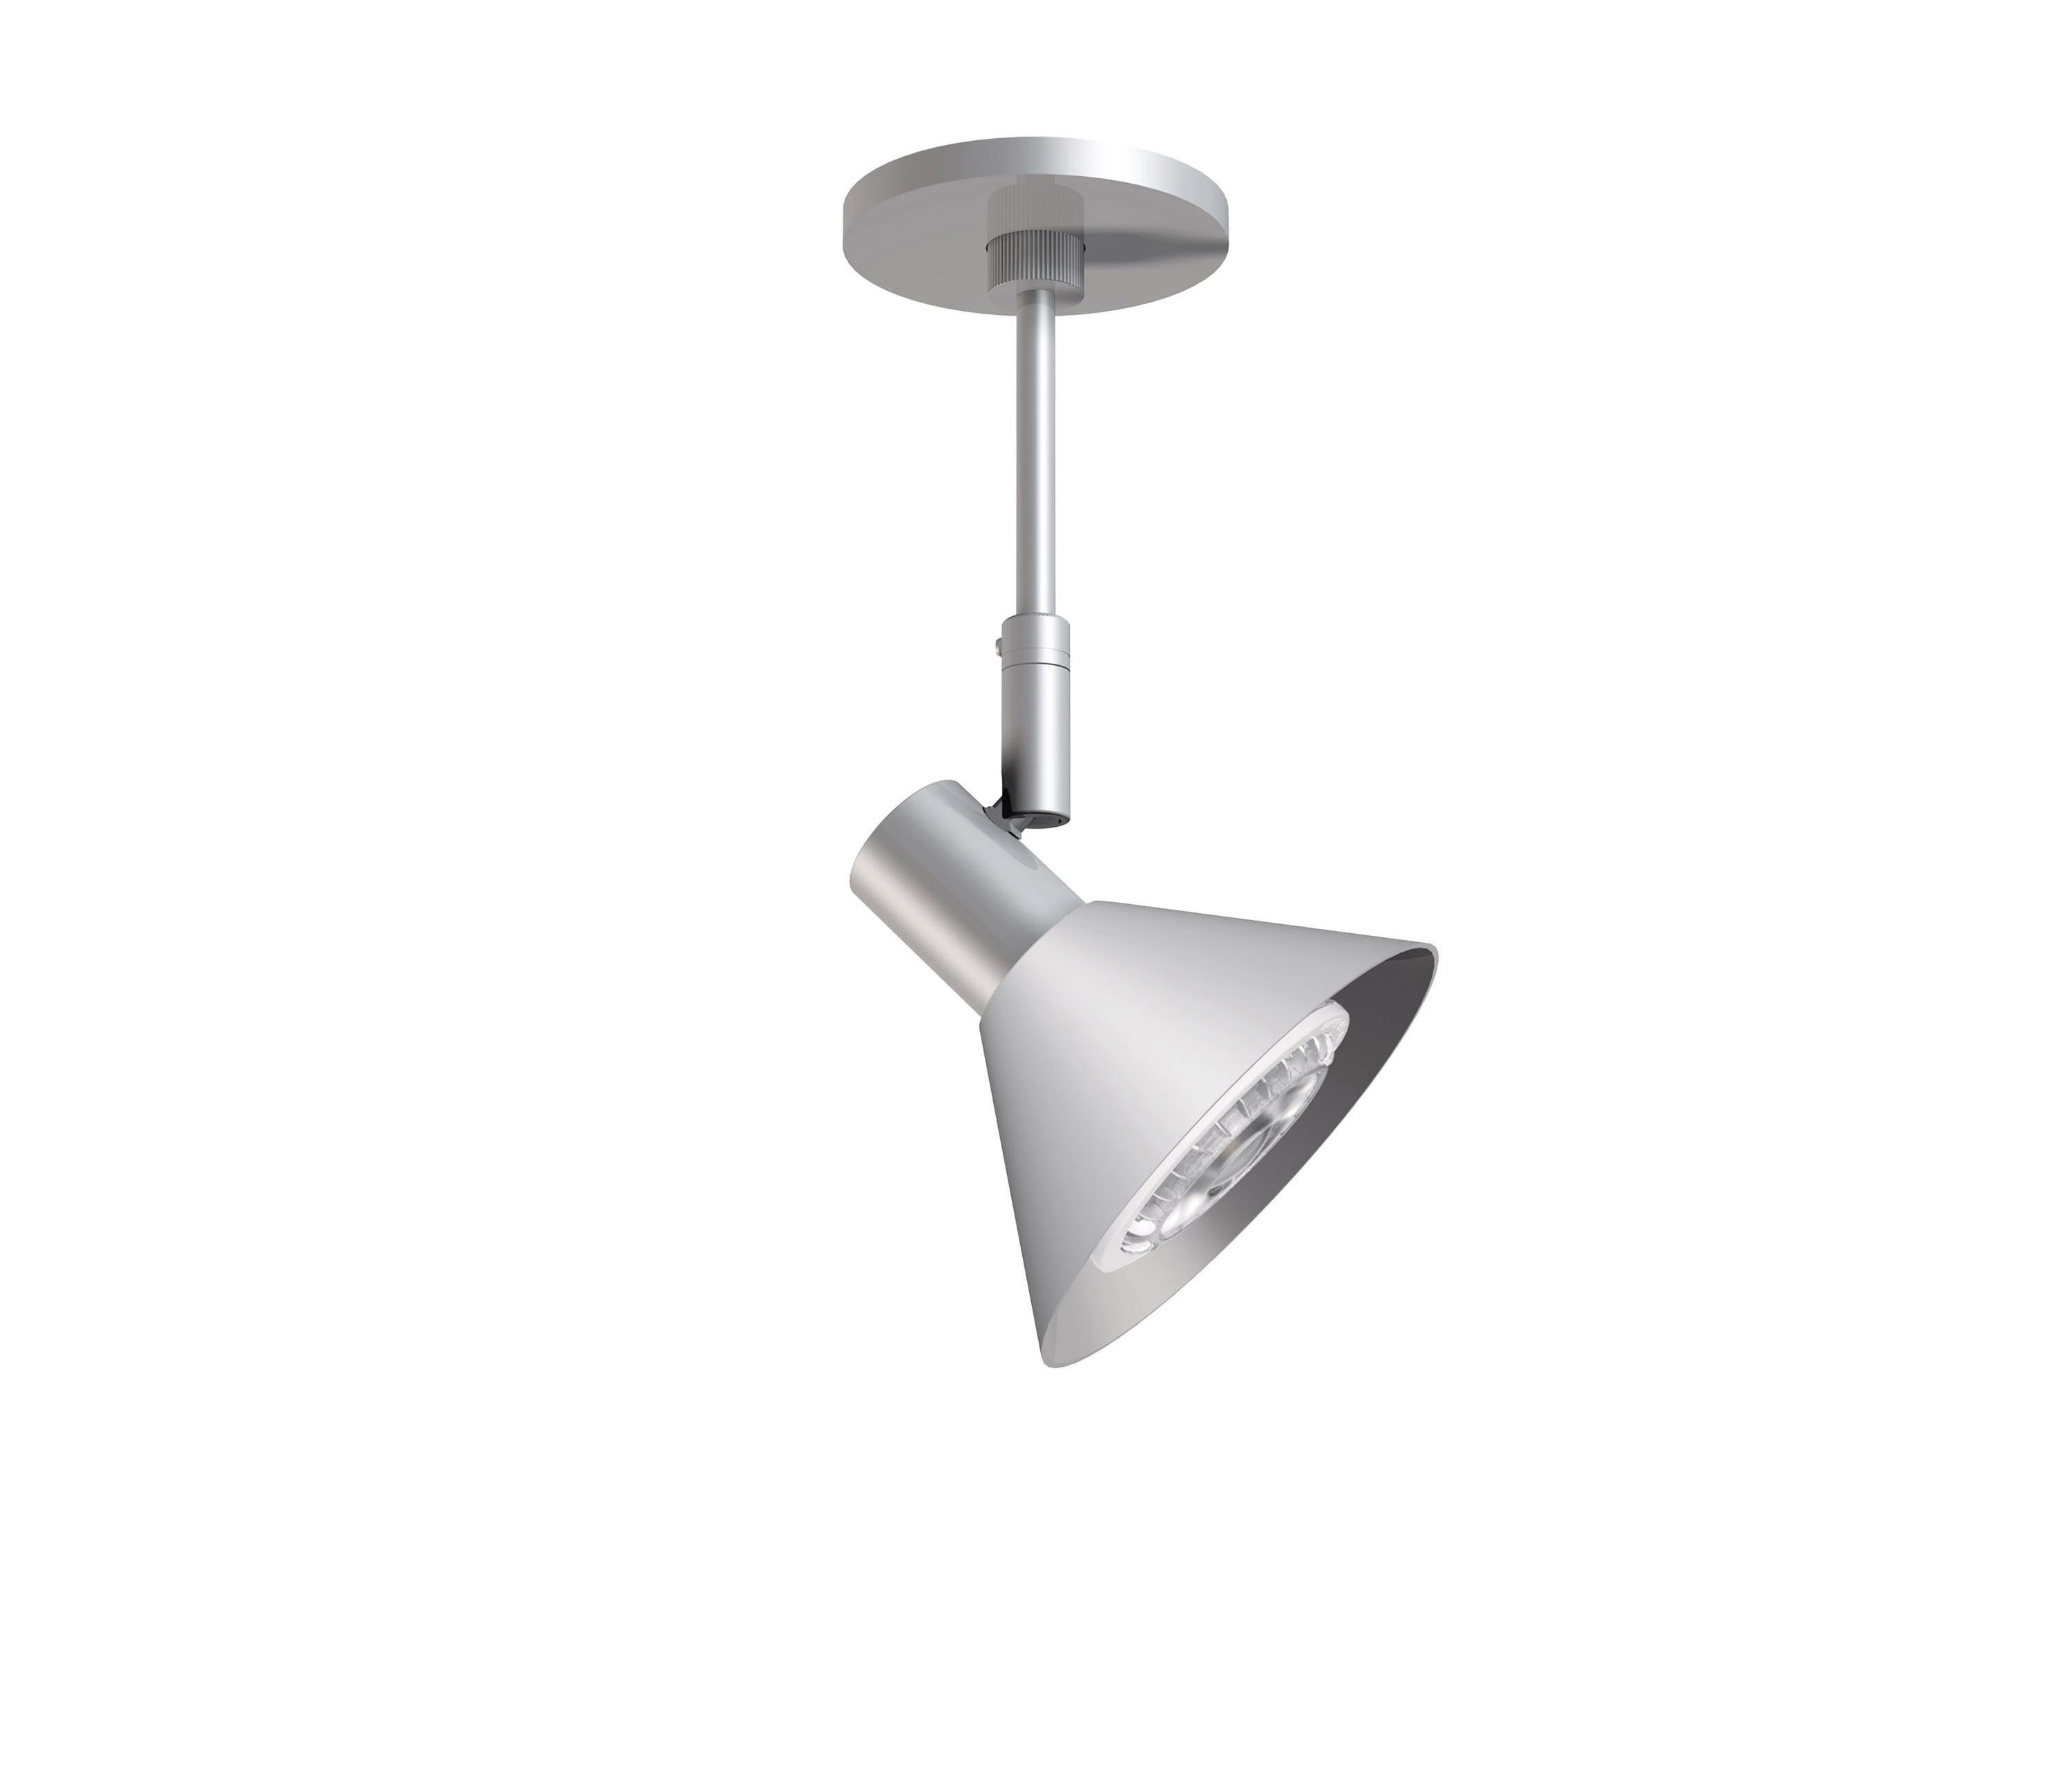 X45 C1m By Mp Lighting Ceiling Mounted Spotlights